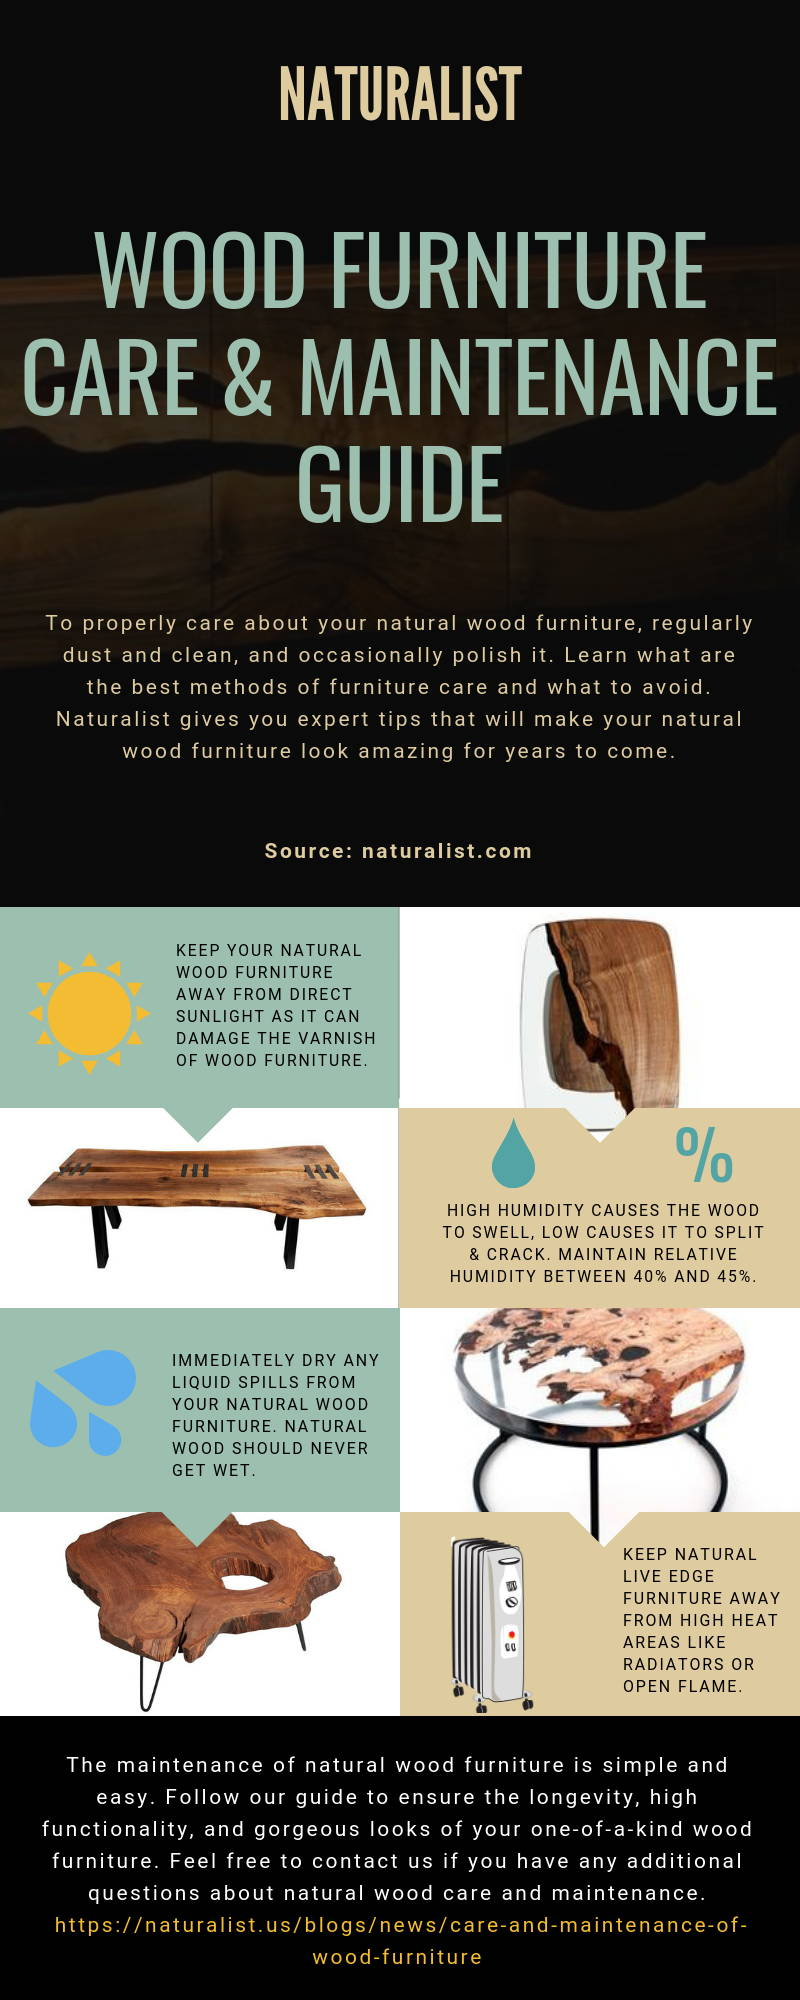 Natural wood furniture care and maintenance guide